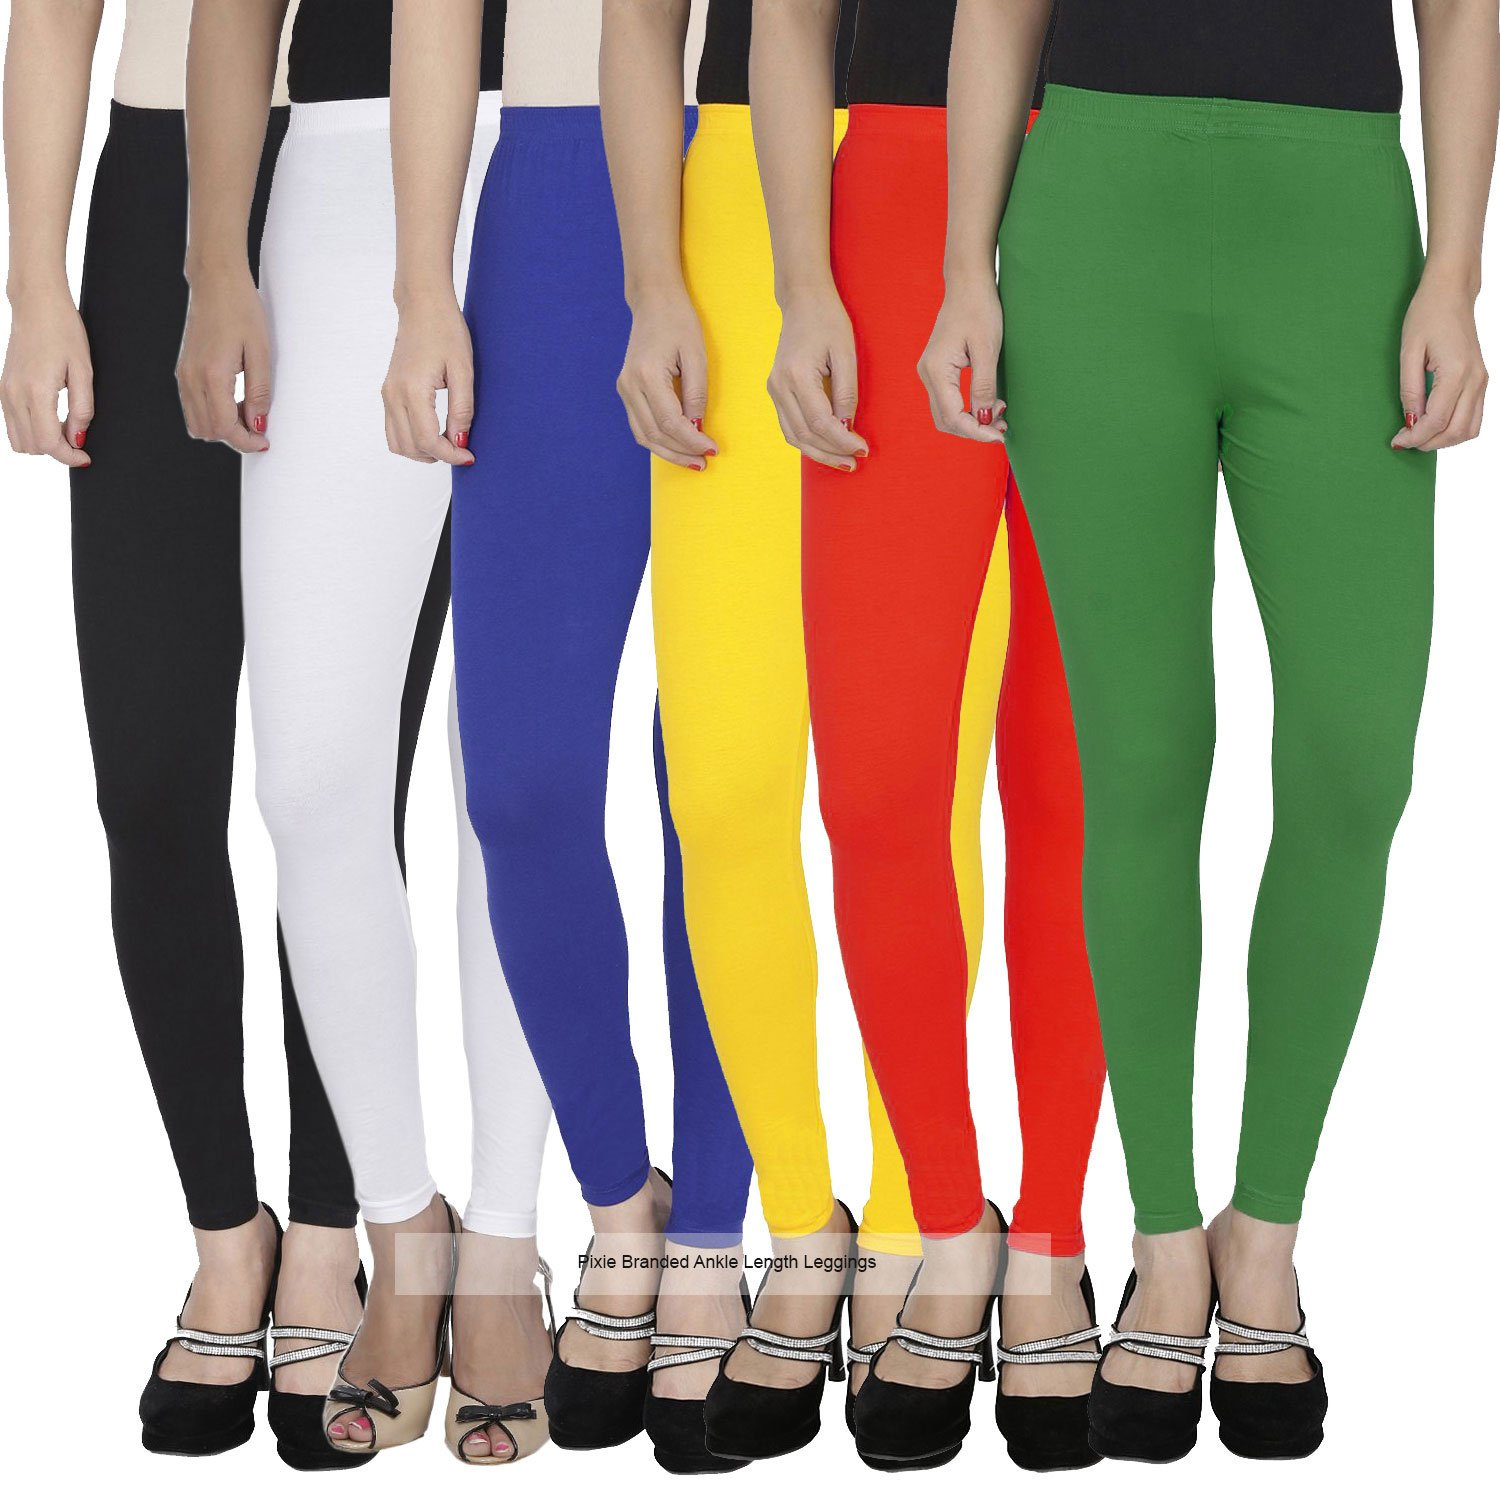 830e980fe585ca women's soft and 4 way stretchable ankle length leggings combo (pack of 6) -